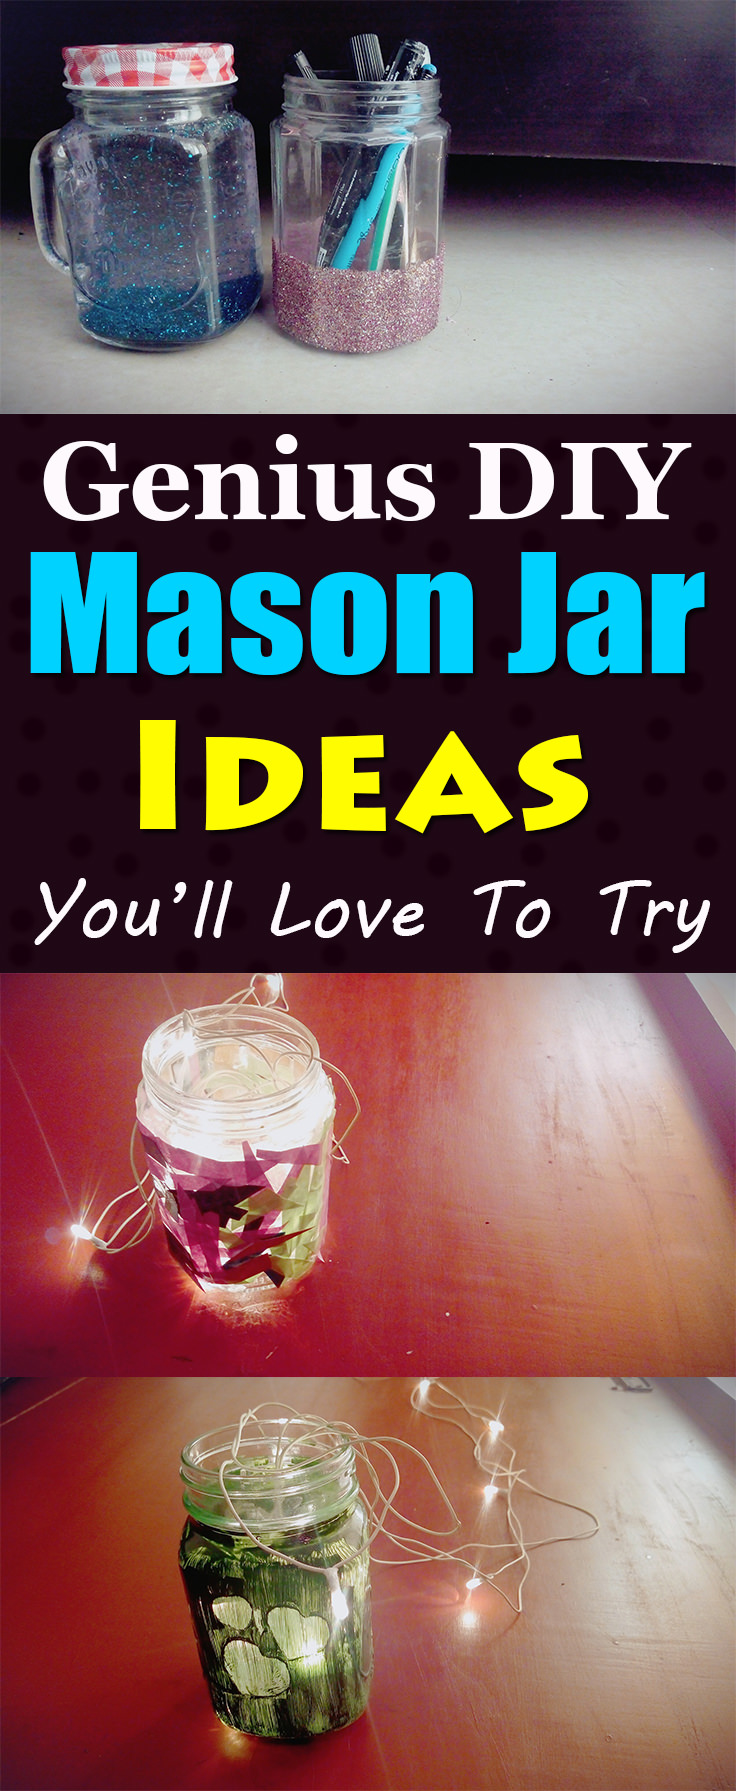 If you are looking for some really cool ideas to use mason jars, these ideas are simply awesome!